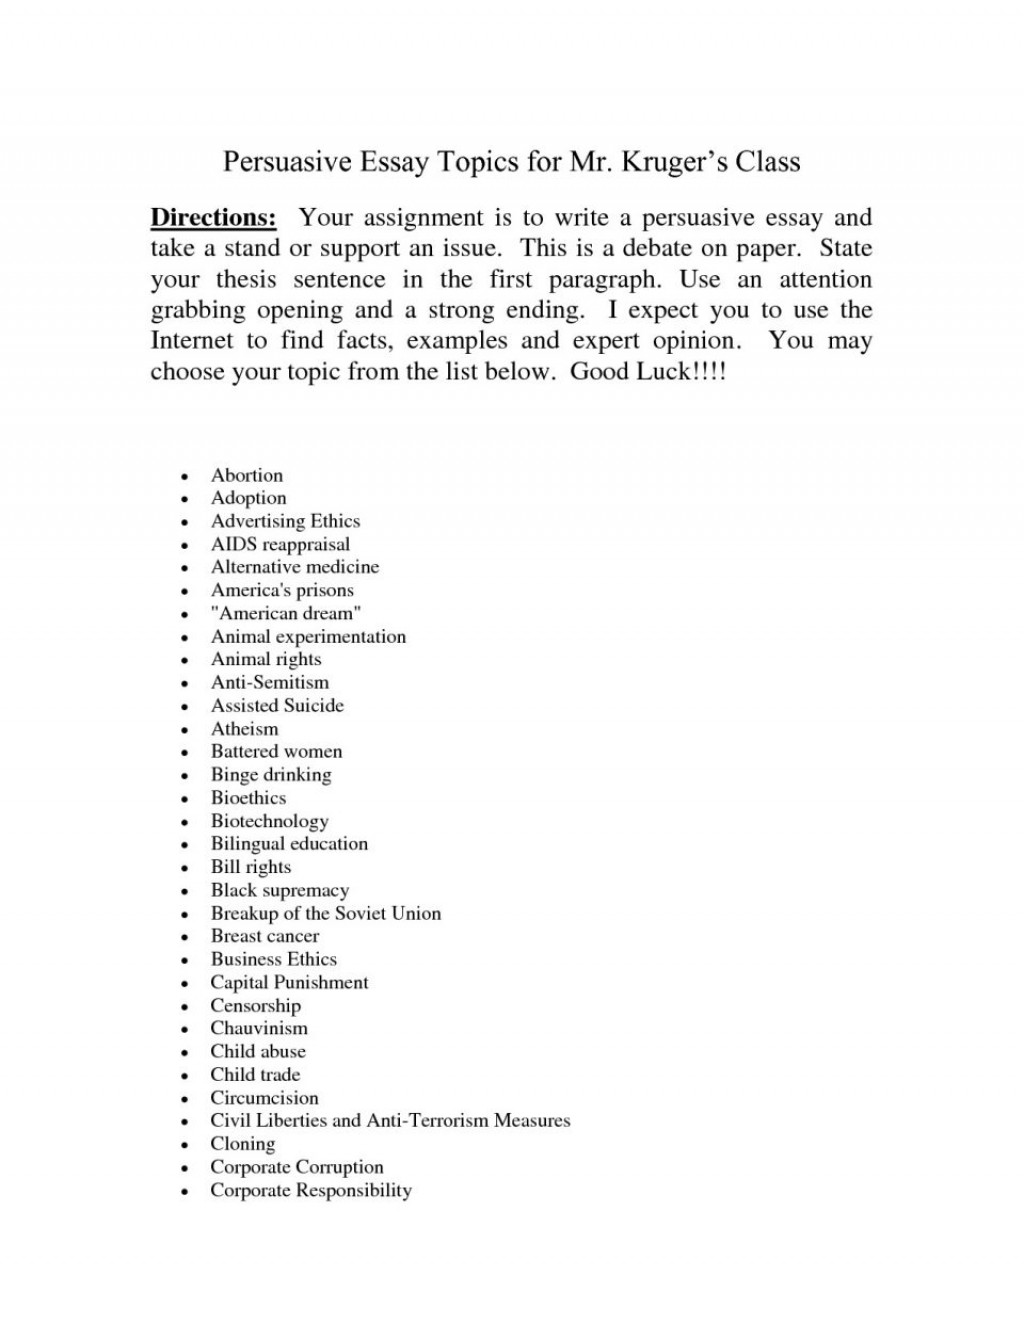 011 Research Paper Good Topic For Essay Barca Fontanacountryinn Within Persuasive Narrative Topics To Write Abo Easy About Personal Descriptive Informative Singular Sports Sociology High School Students In The Philippines Large